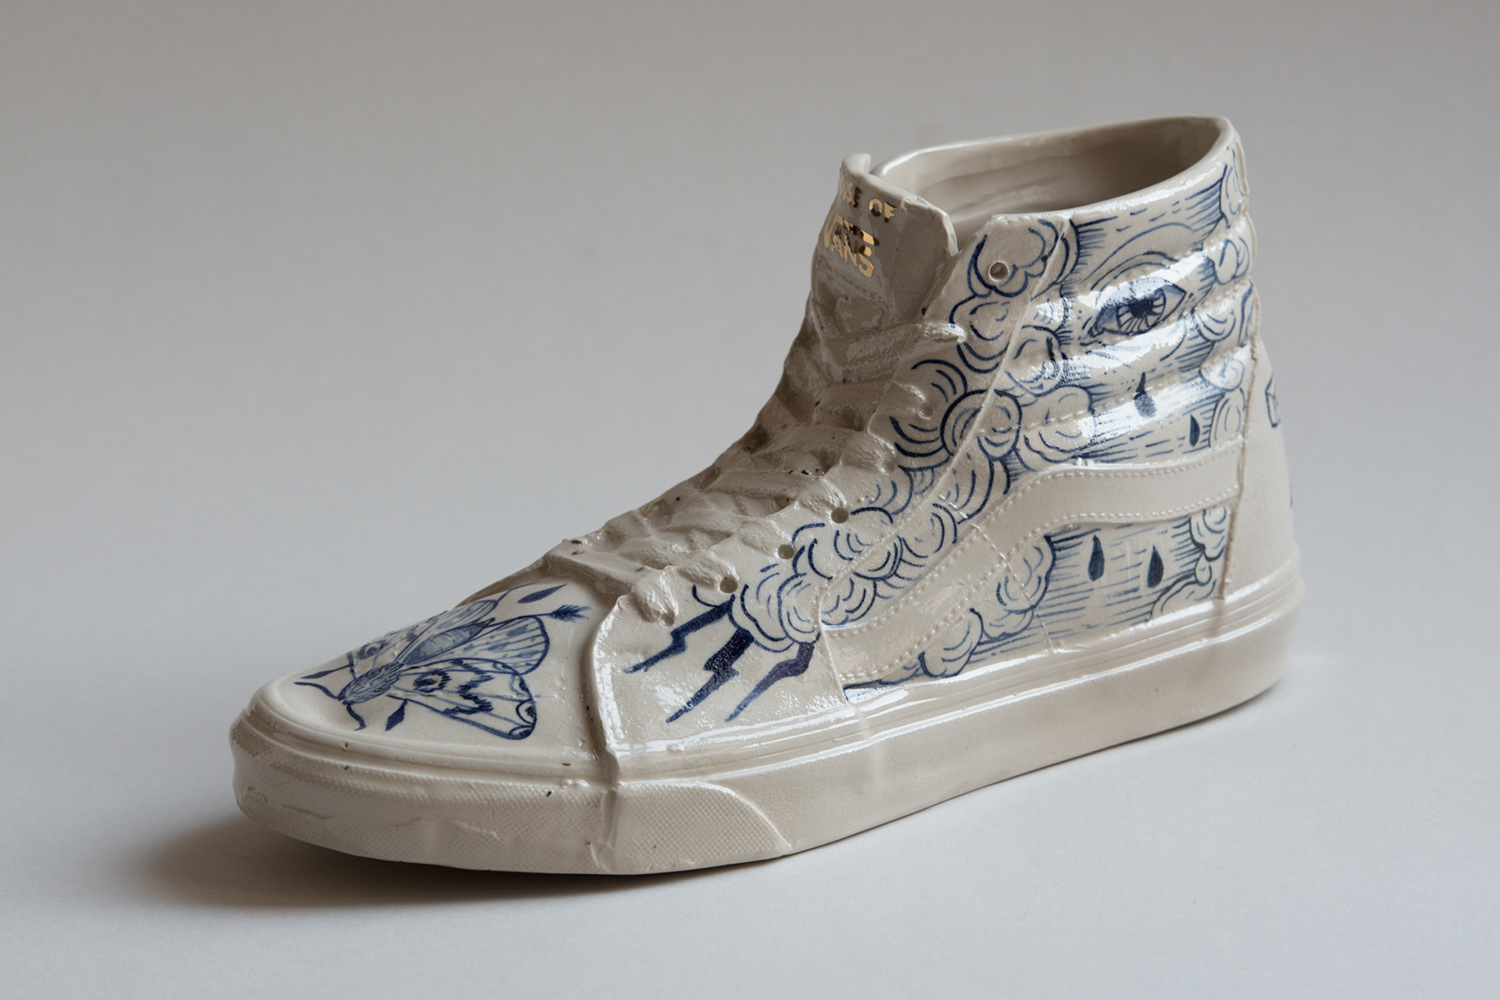 Vans sk8Hi skate shoe porcelain hand painted ceramic blue tattoo handmade Berlin art Marta ANtikapratika.jpg